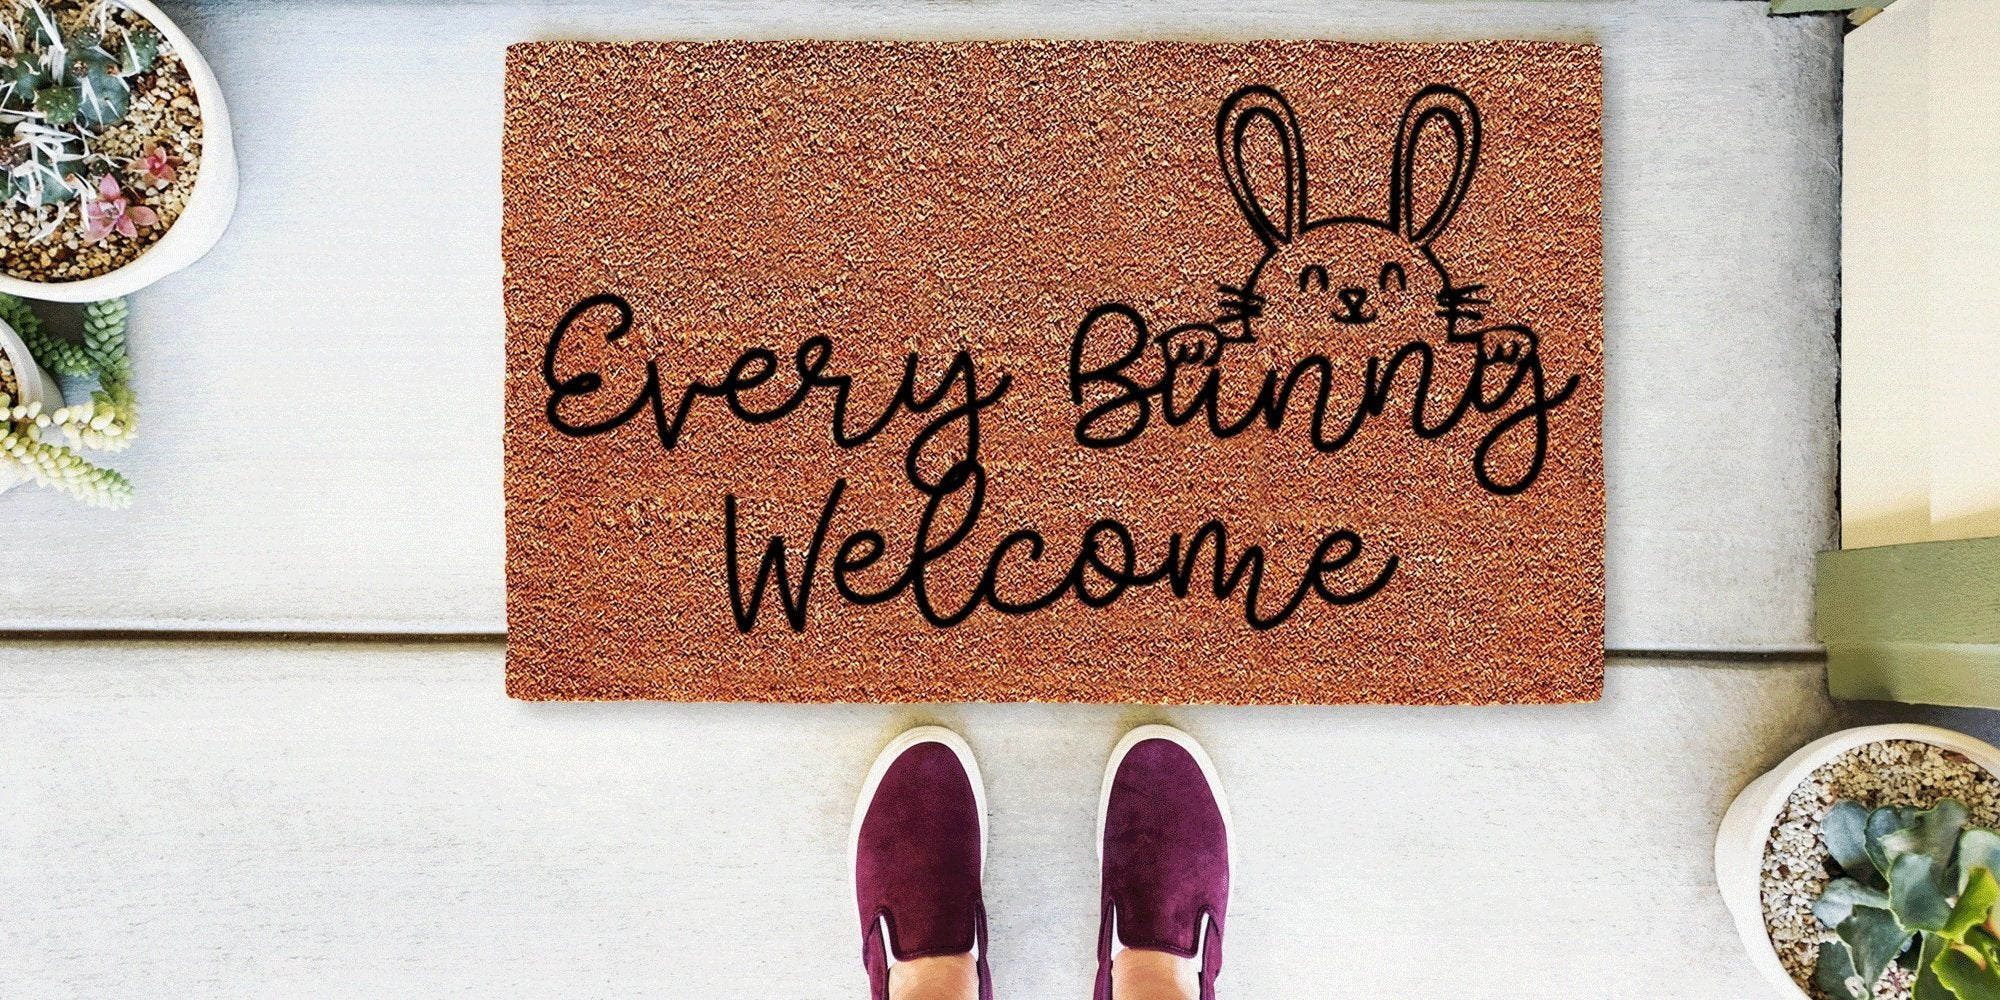 GEO Coordinate Doormat. Put your GEO coordinates on a personalized doormat.  Can't get more personal than that!